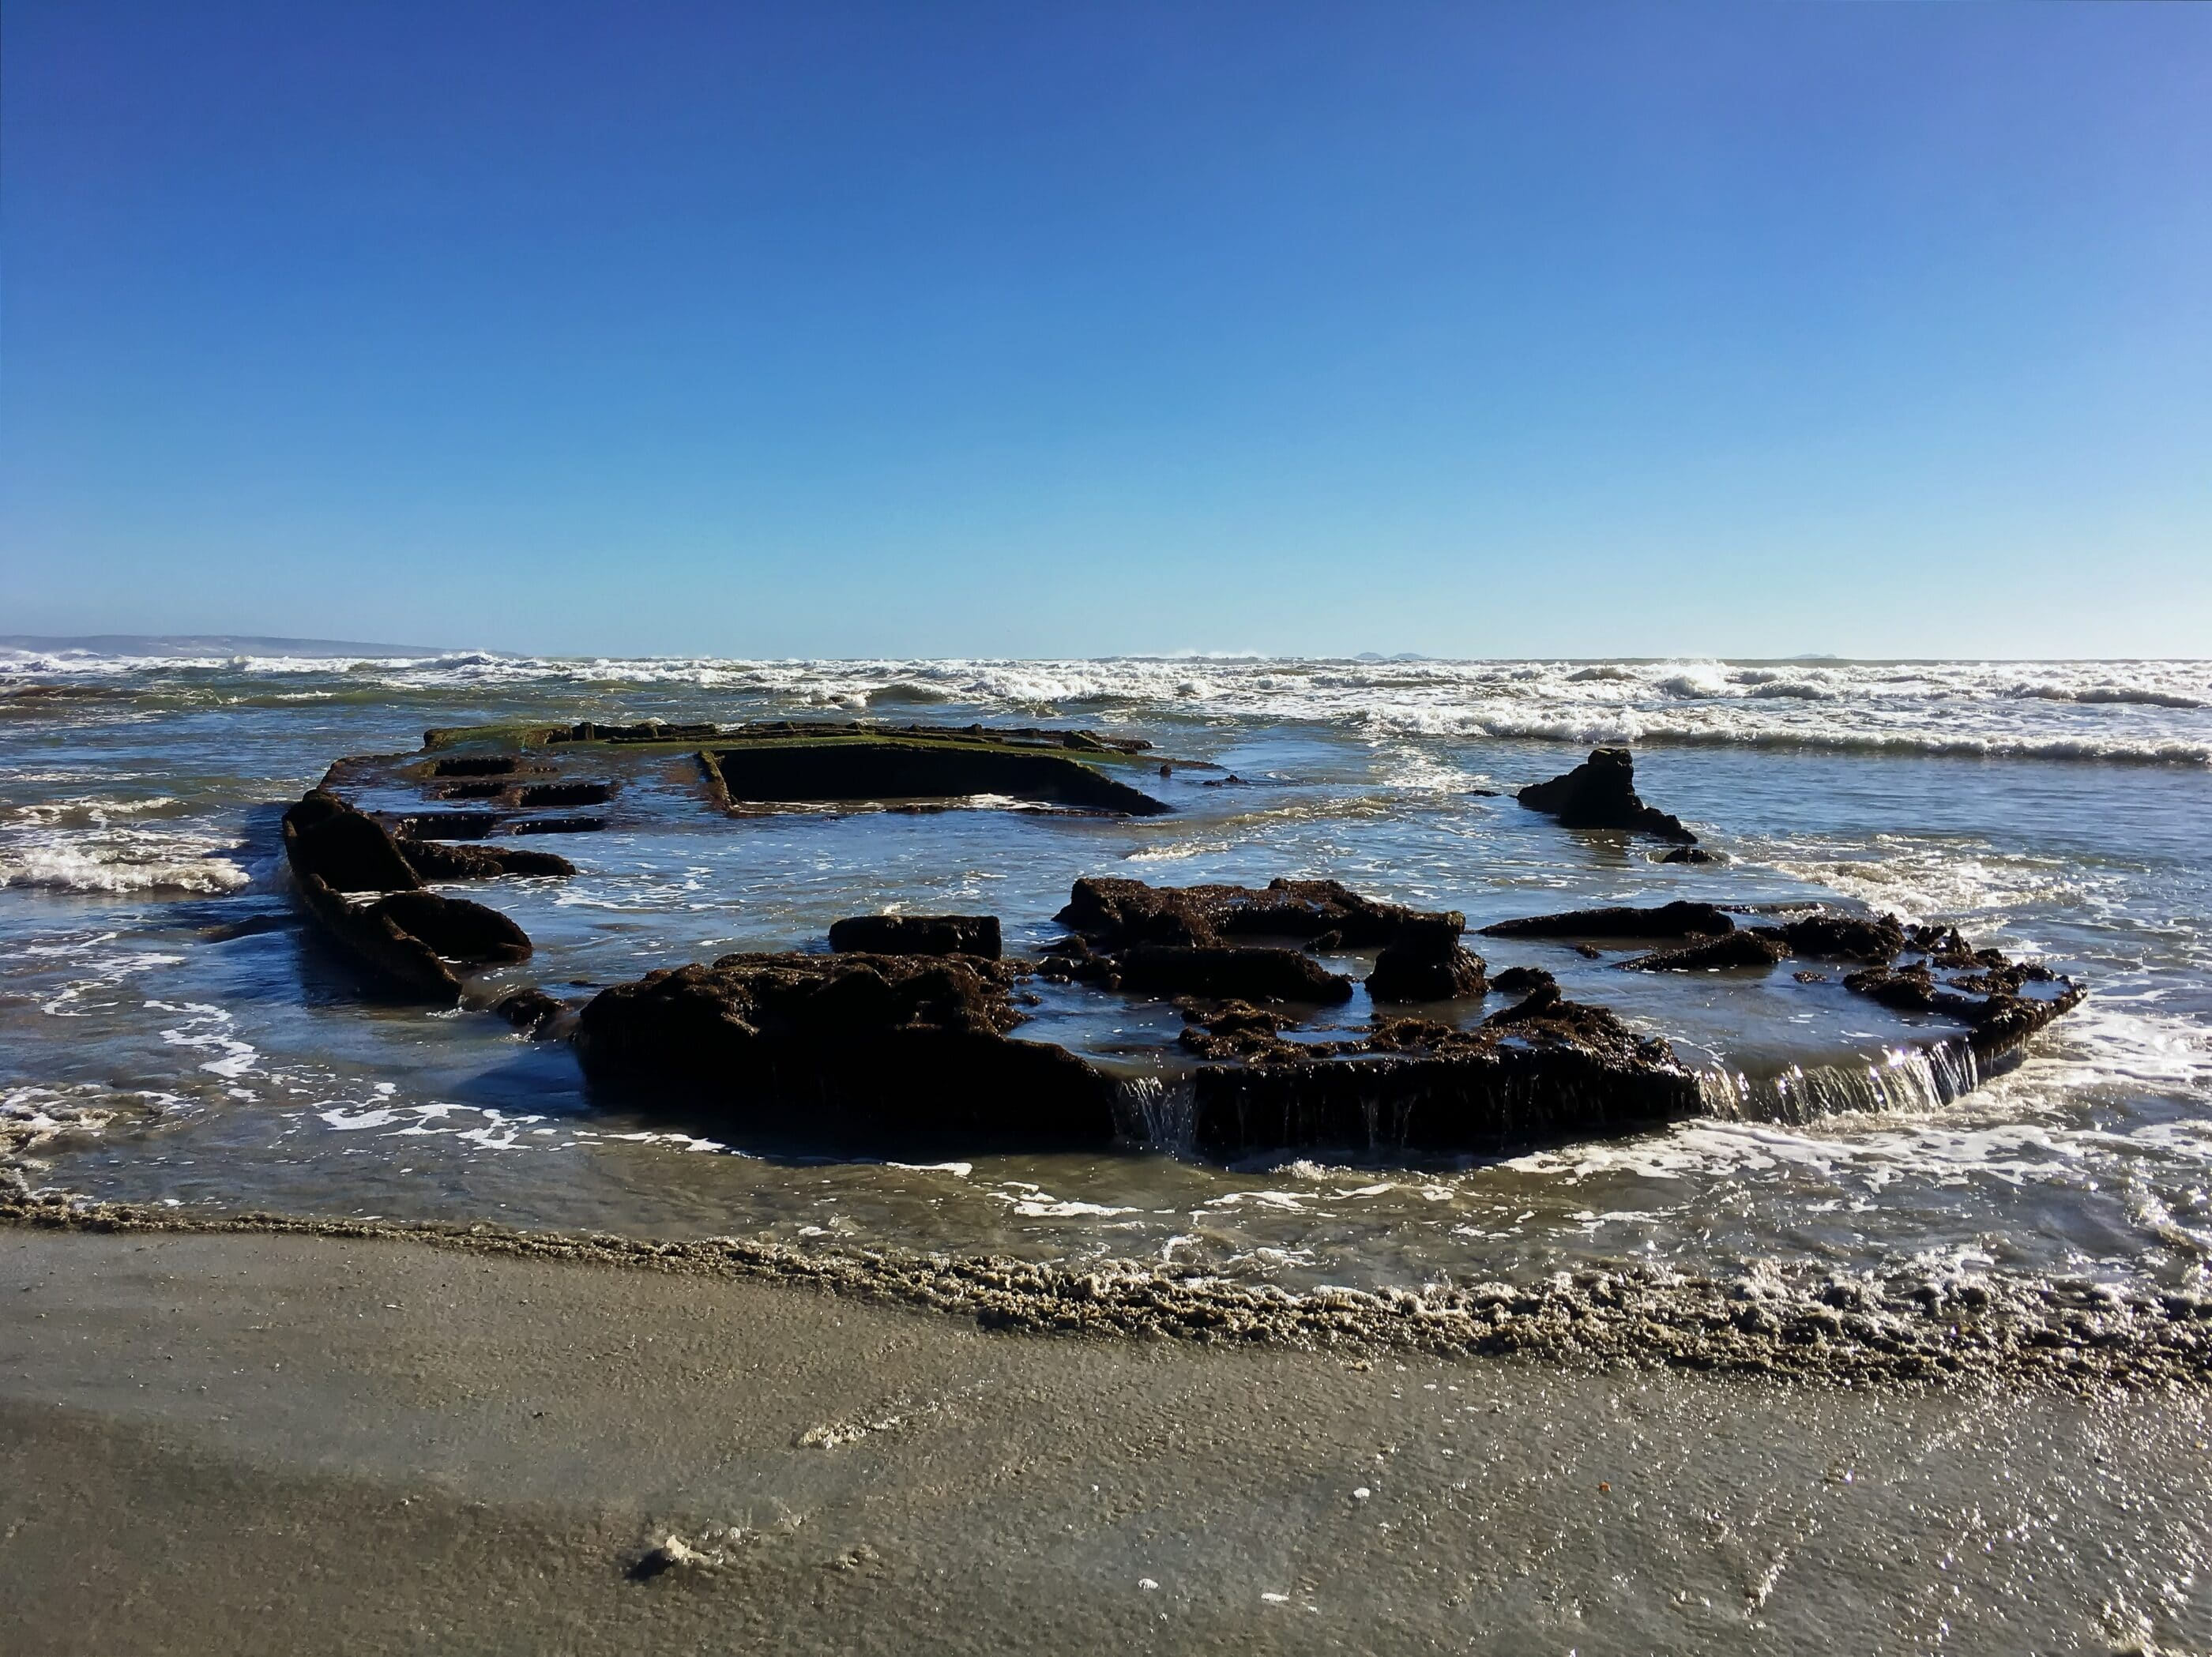 SS Monte Carlo shipwreck revealed on the Coronado beach during low tide.